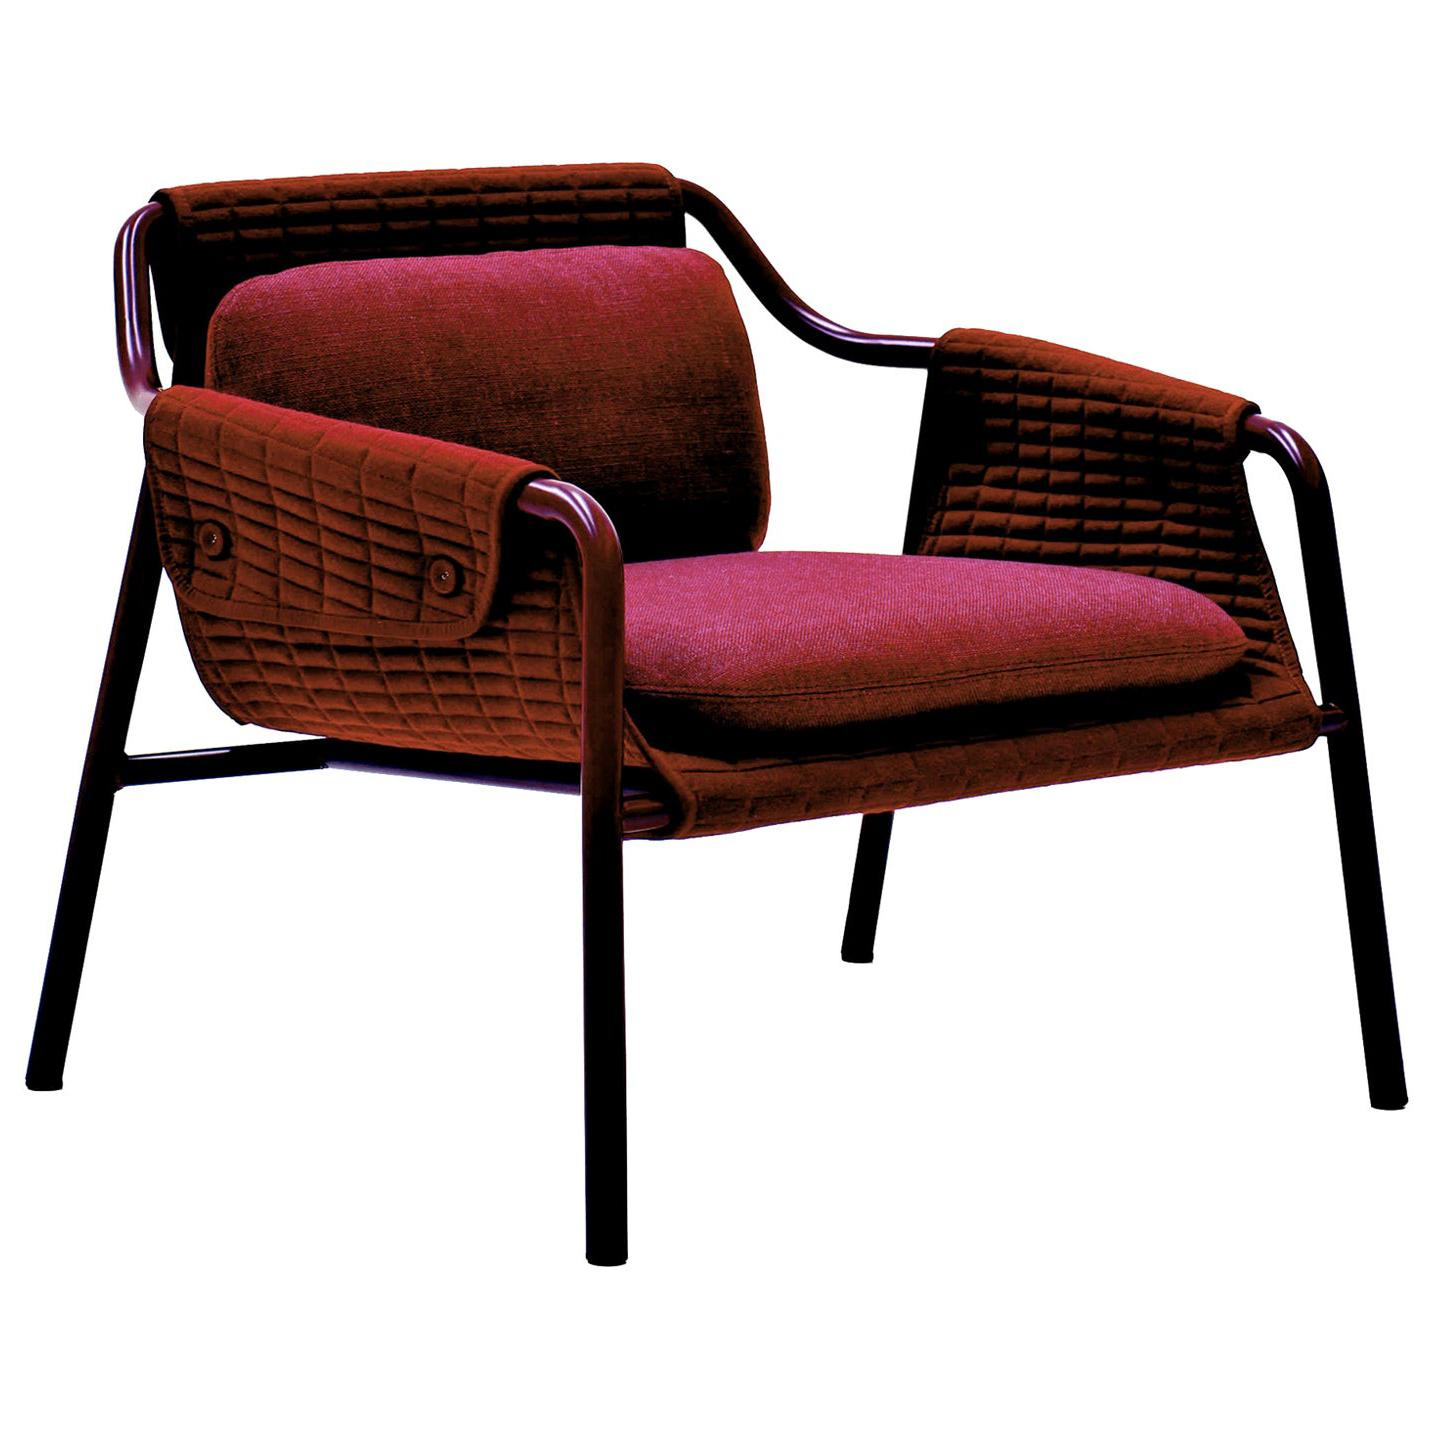 Jacket Red Armchair by Patrick Norguet